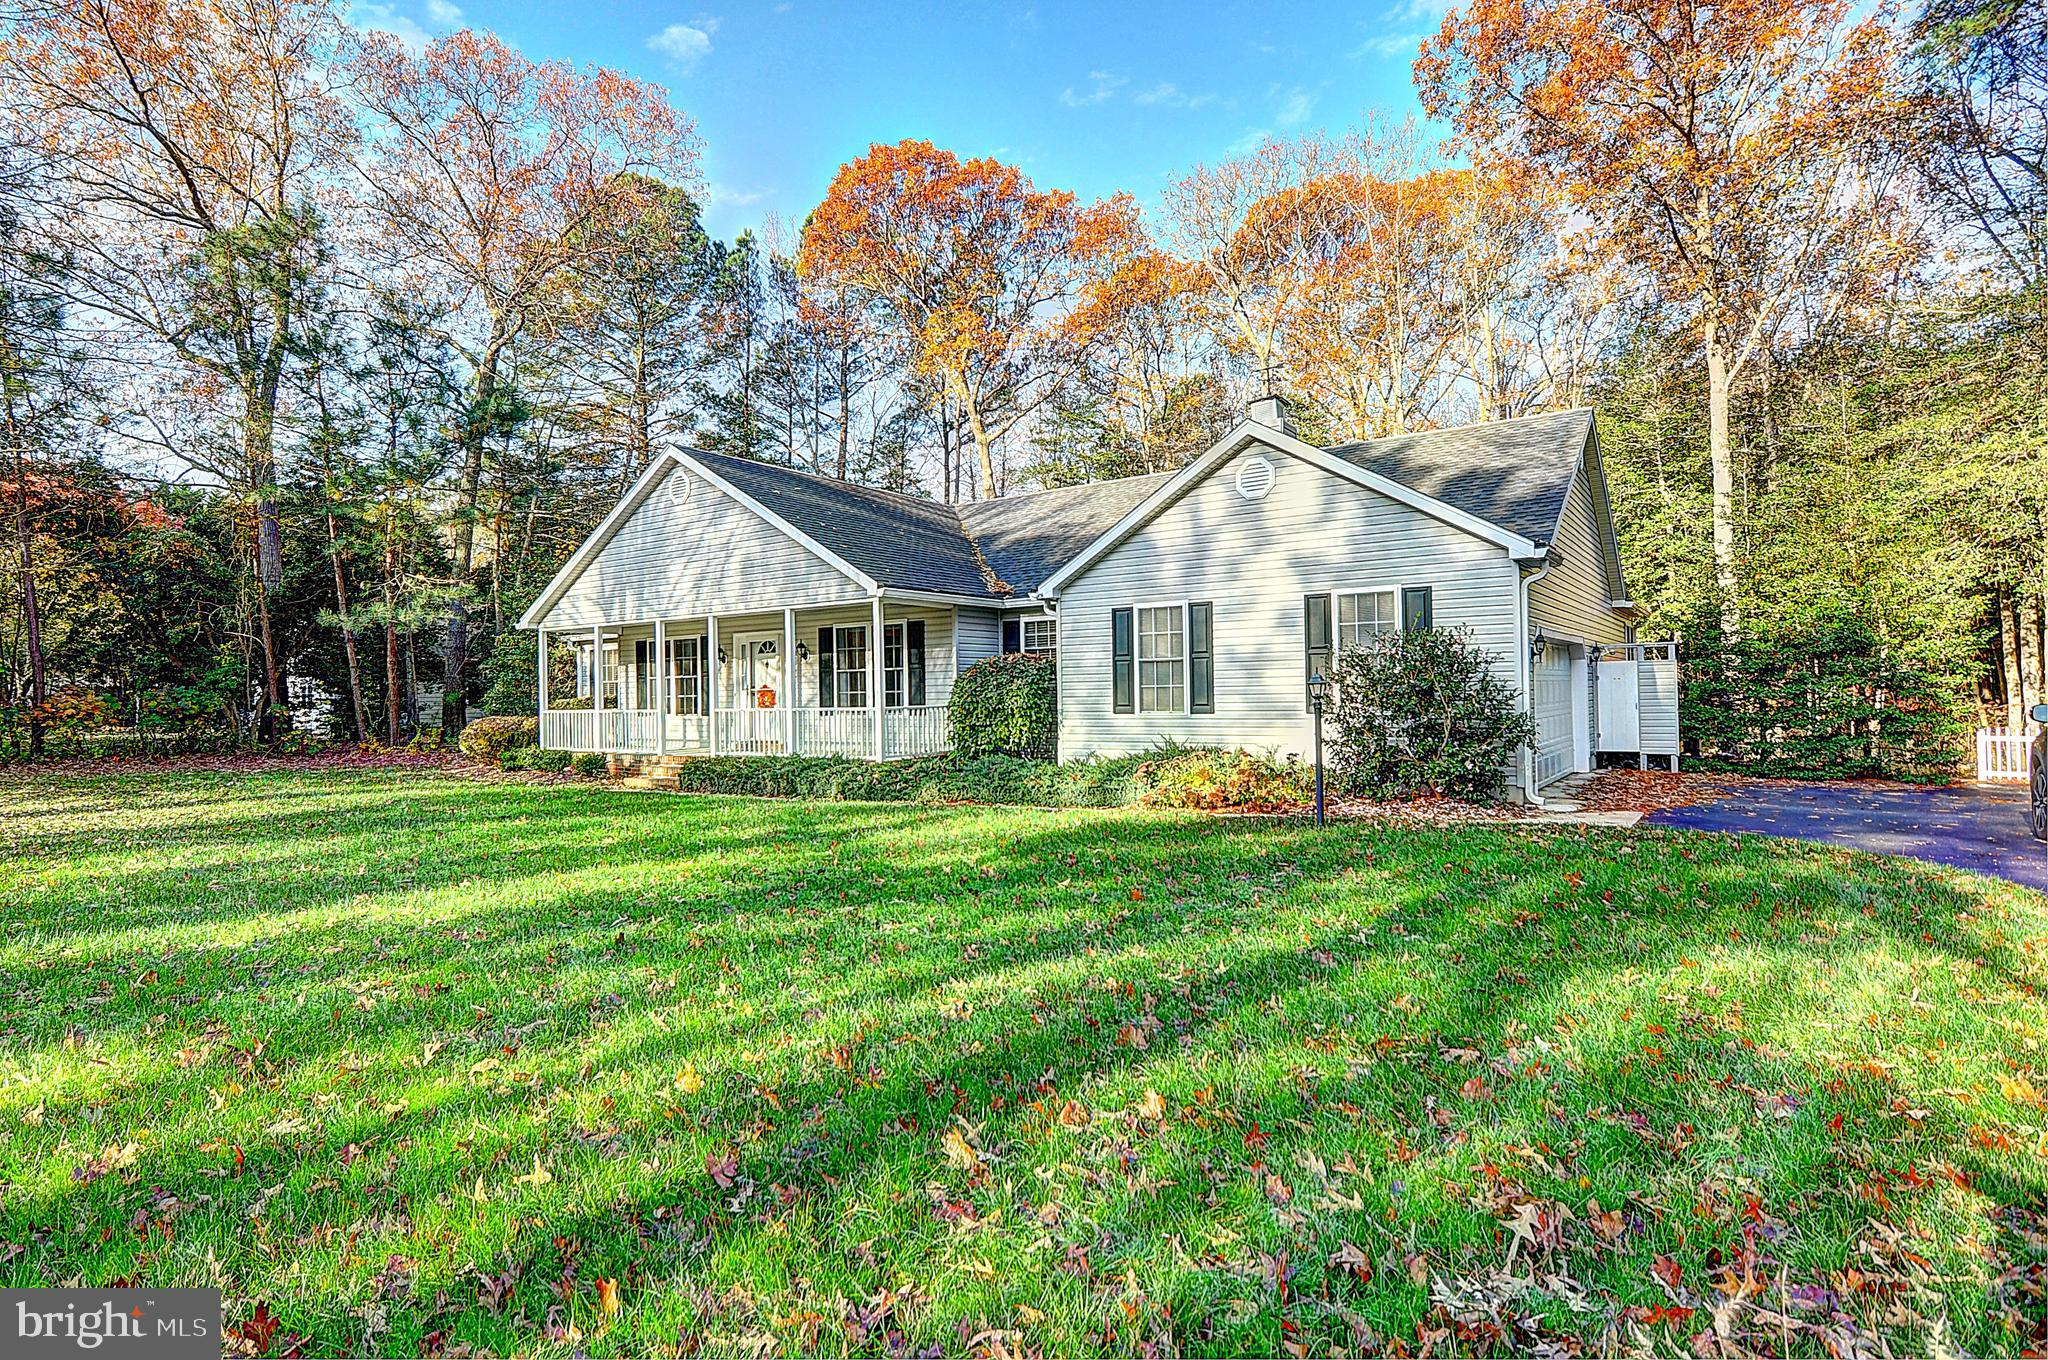 Well maintained ranch home nestled in a highly desired private, wooded setting in the most convenien